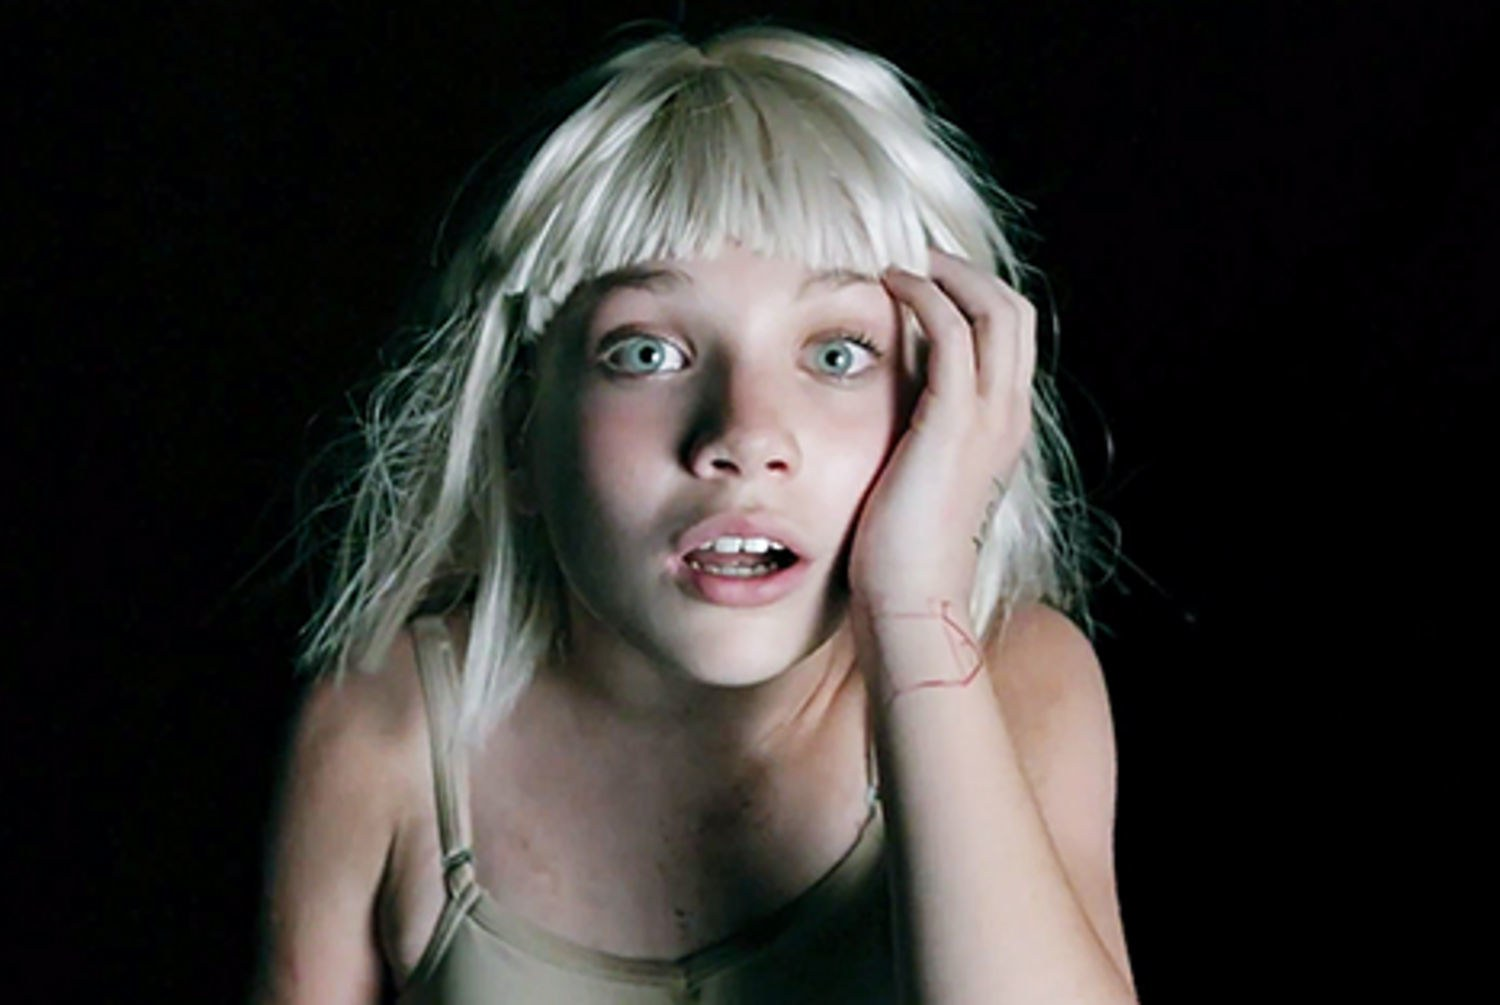 Young Sia nudes (62 foto and video), Topless, Cleavage, Feet, bra 2015